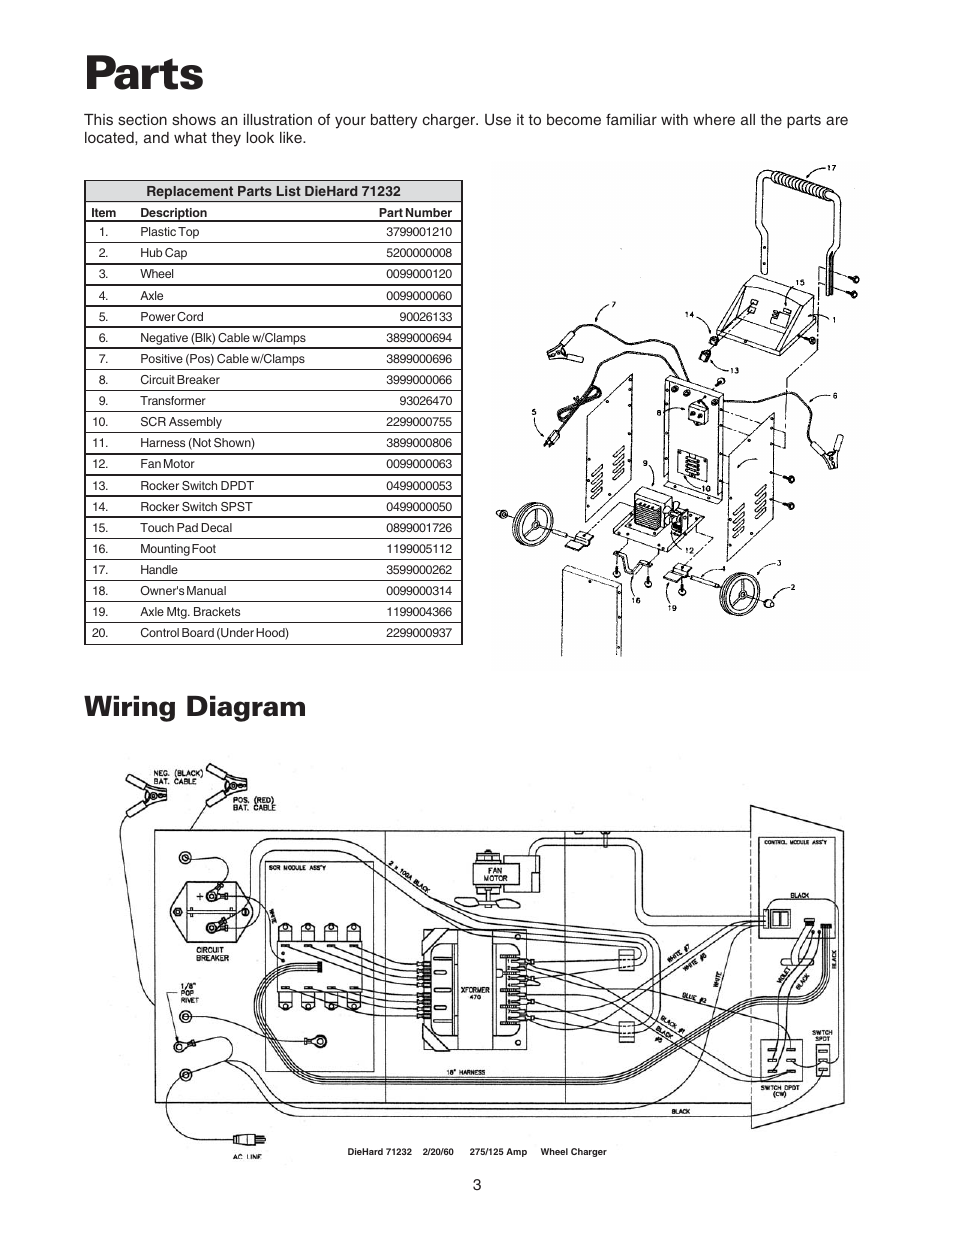 sears smoothtop wiring diagrams parts, wiring diagram | sears 200.71232 user manual | page ... #10